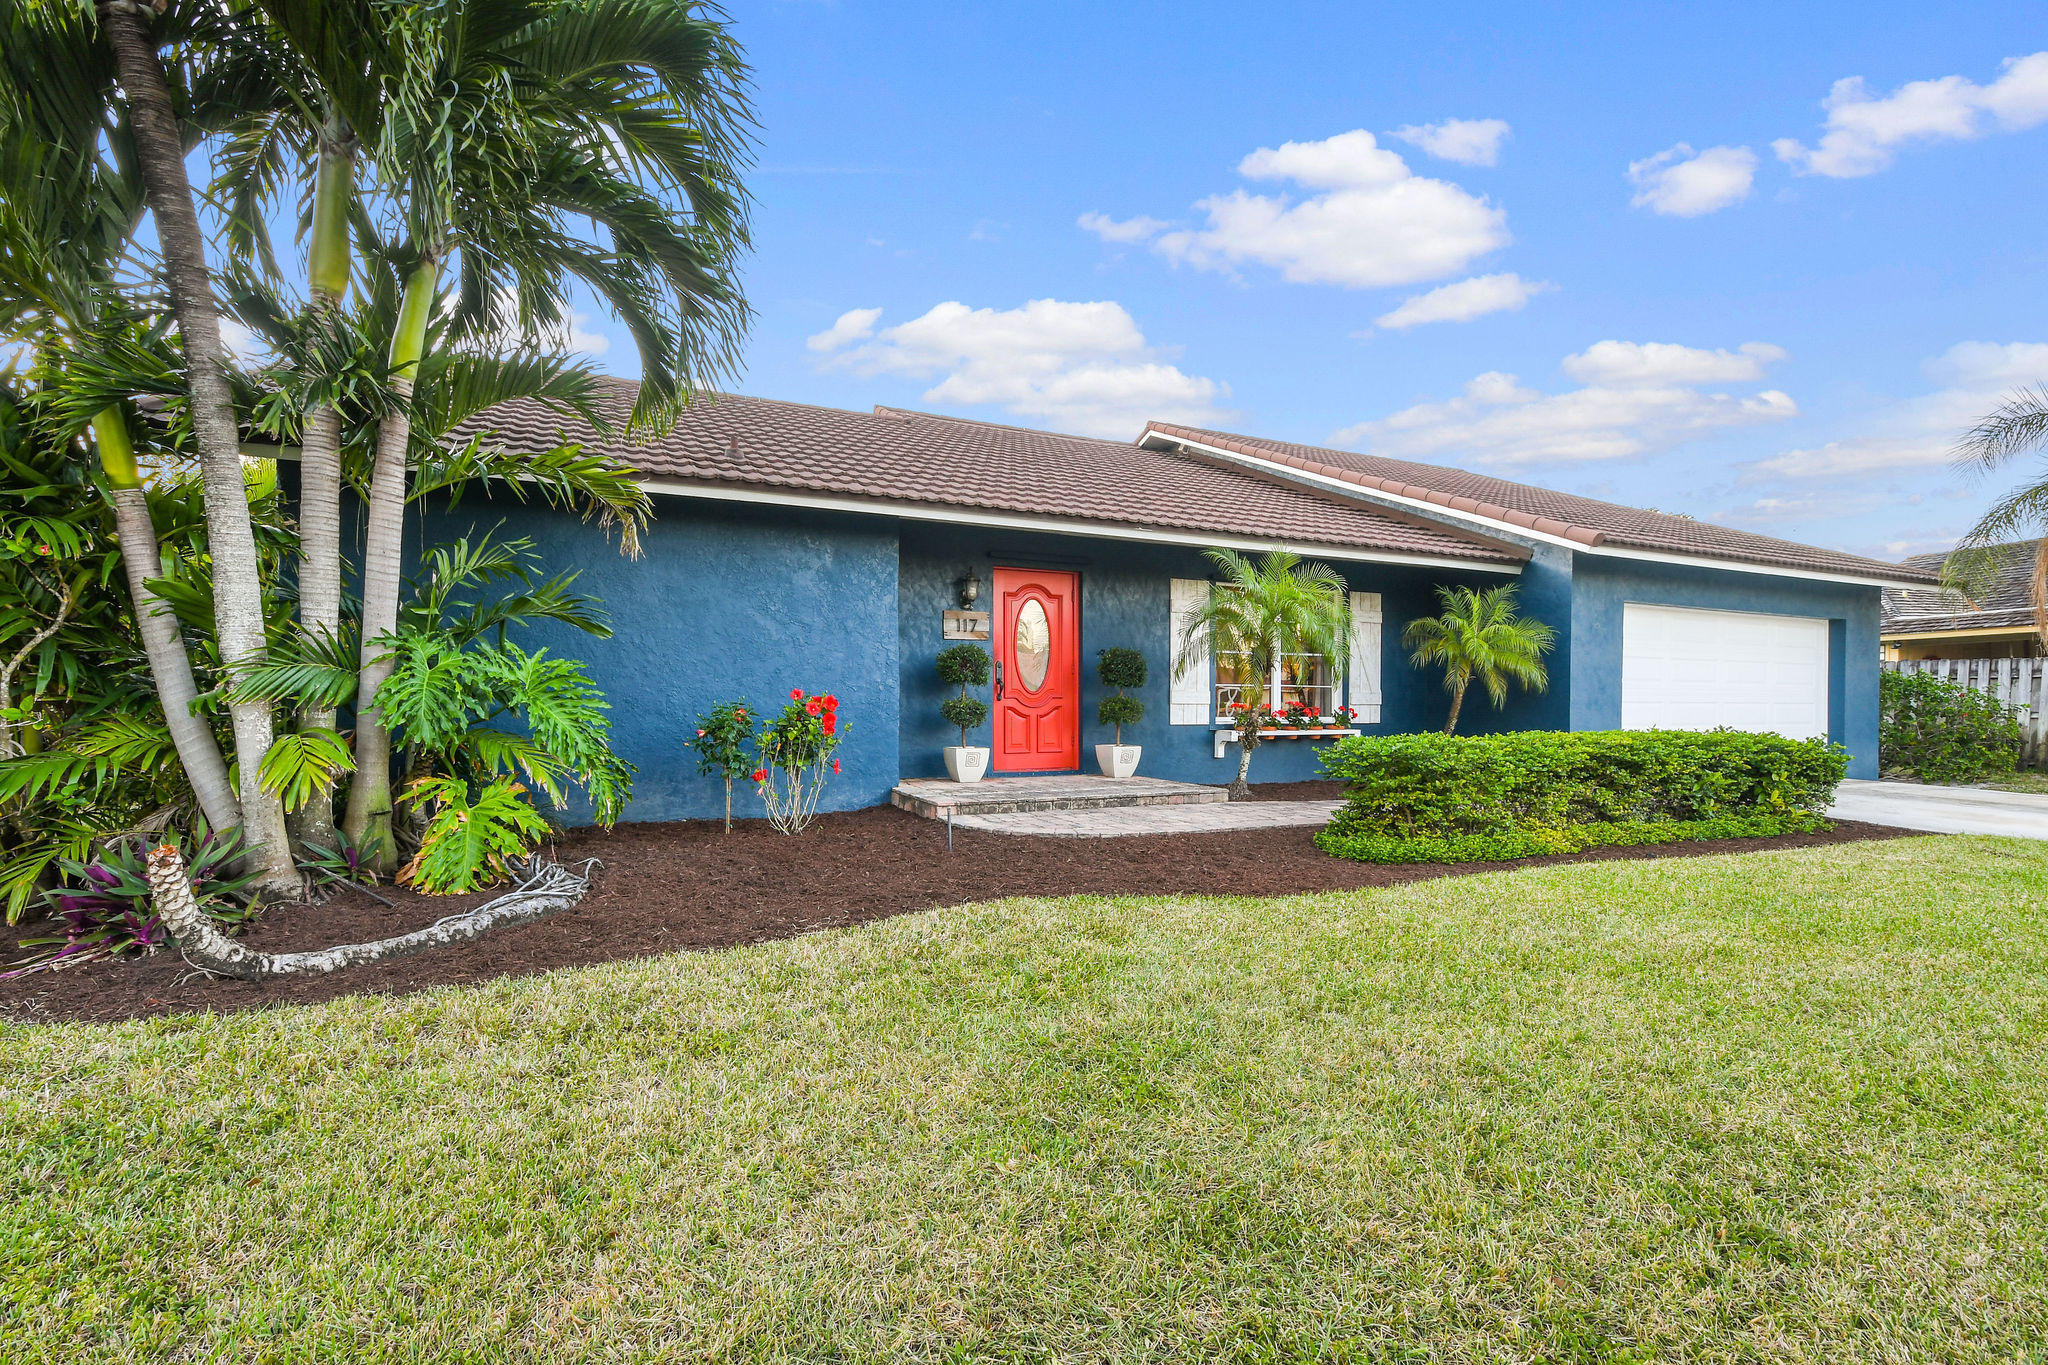 117 Pinehill Trail - Tequesta, Florida